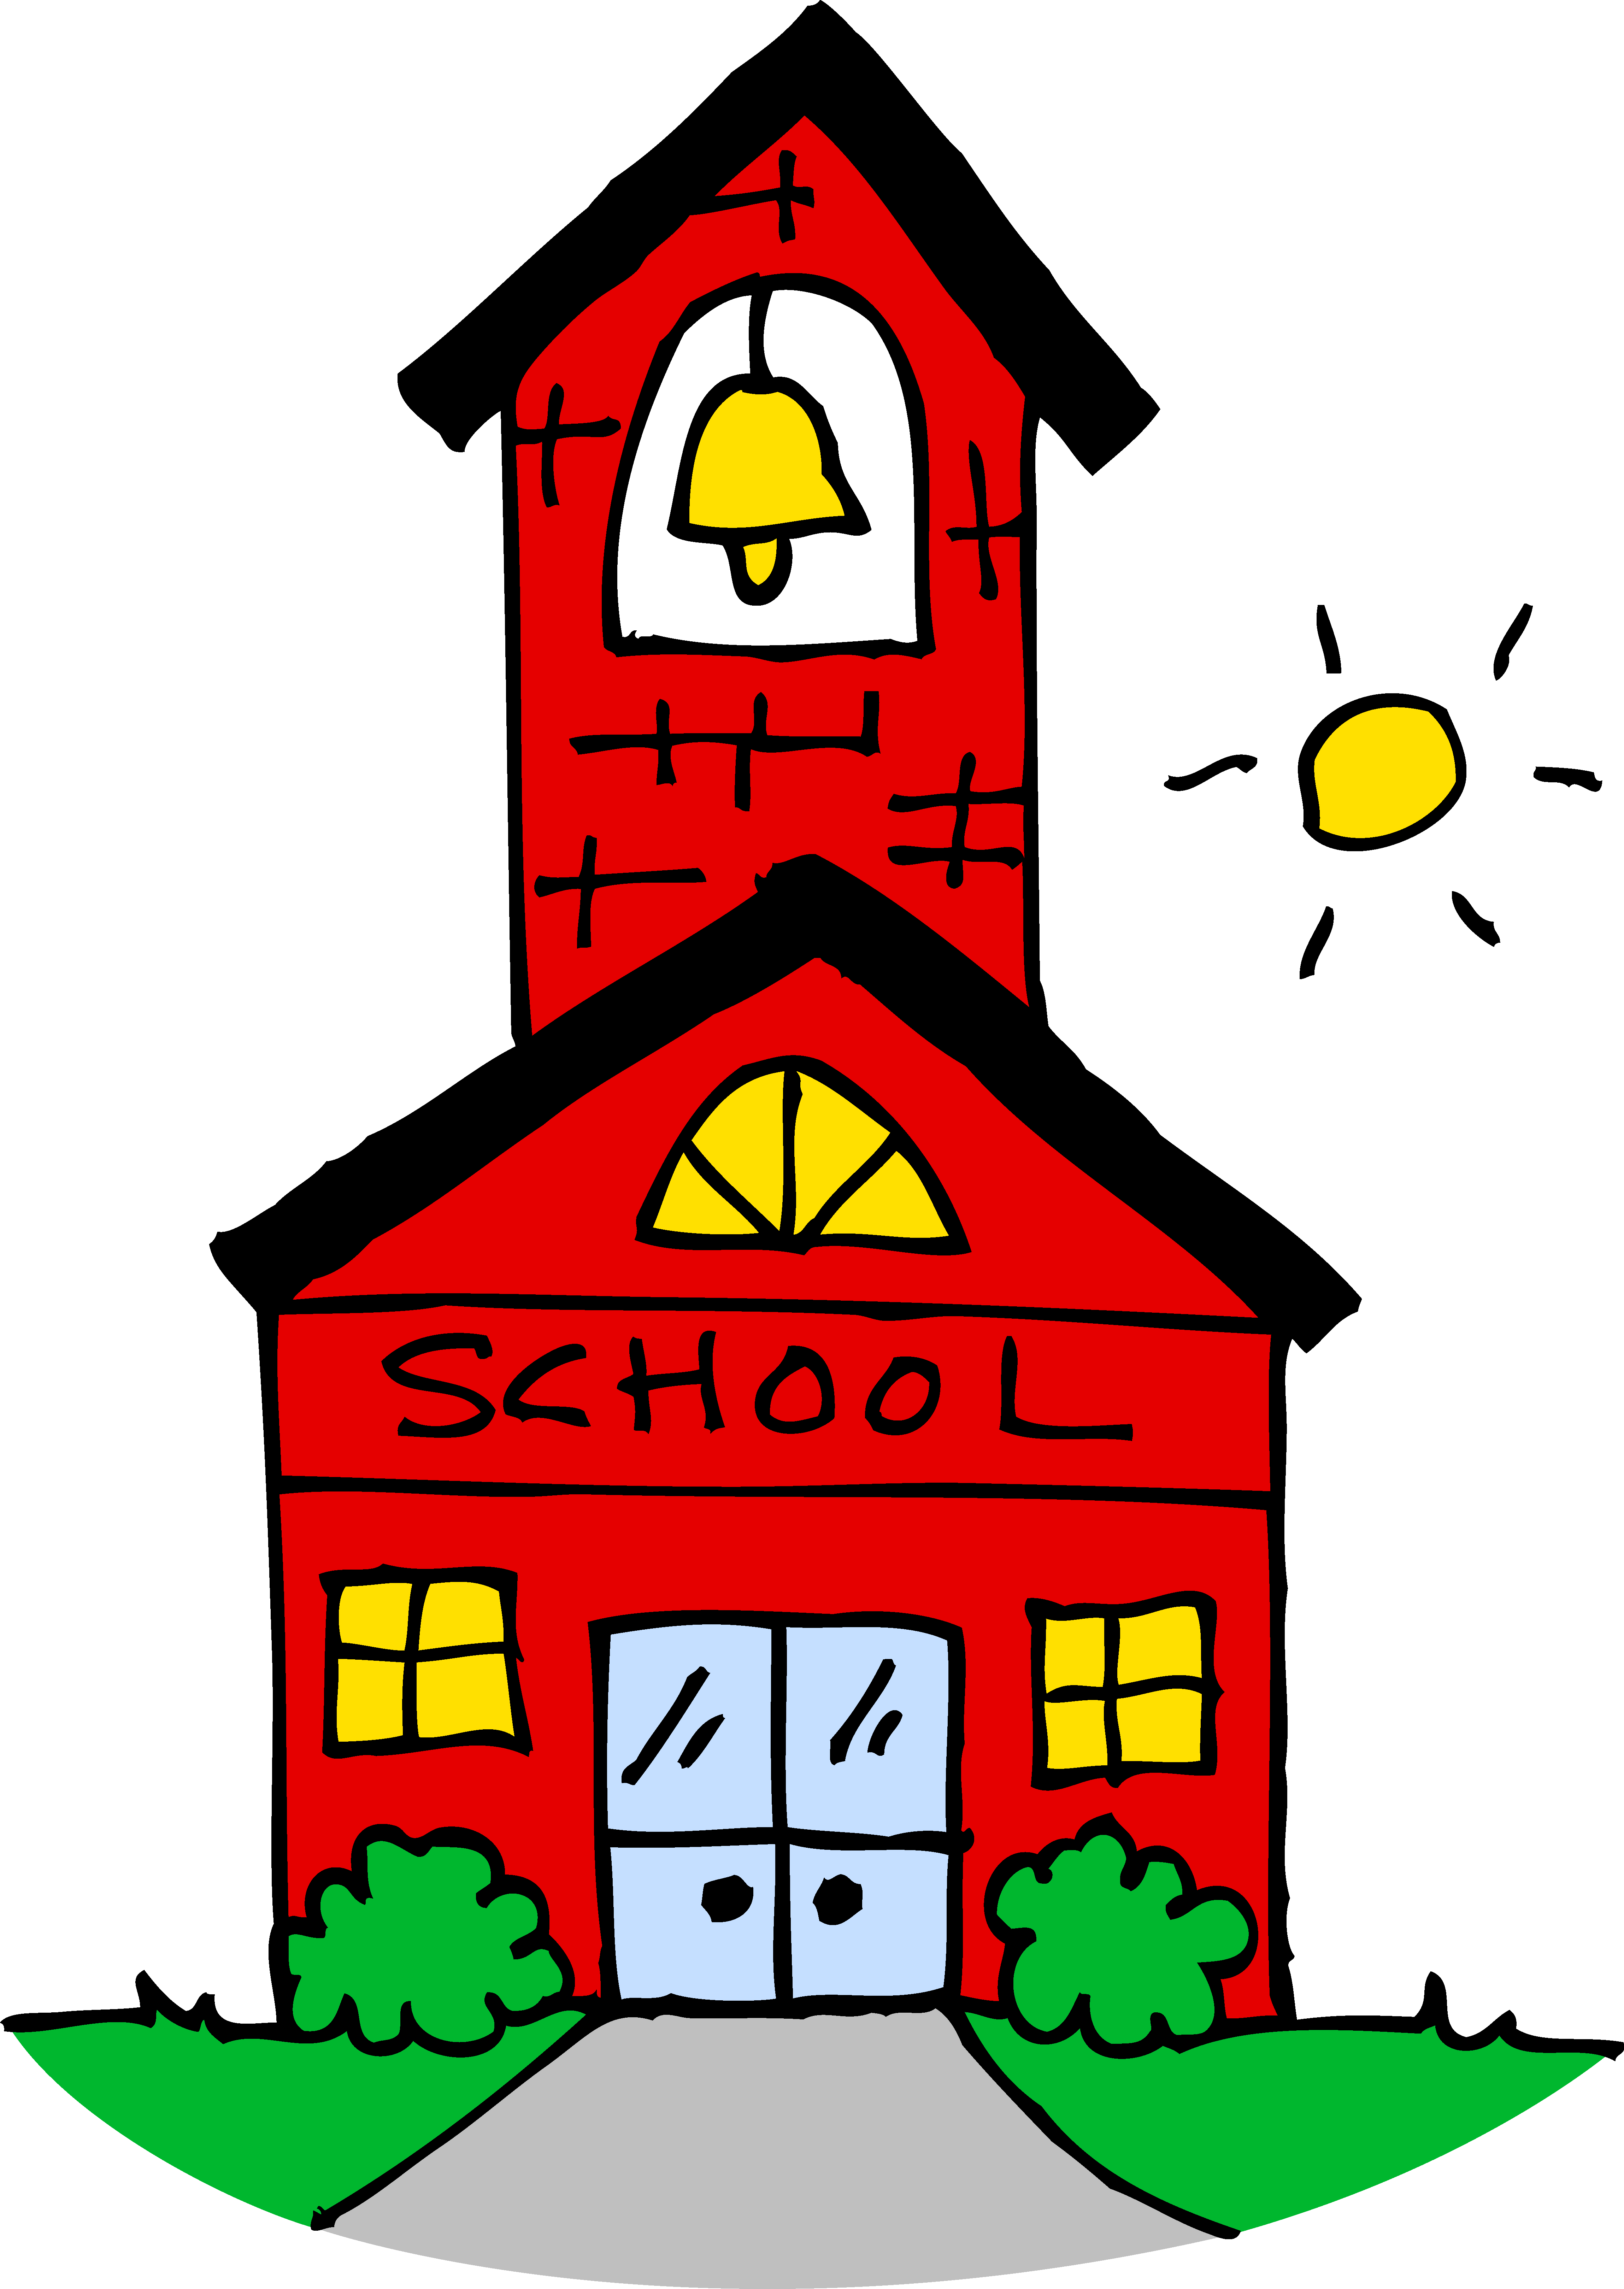 School clipart transparent background 1 » Clipart Portal clipart royalty free download